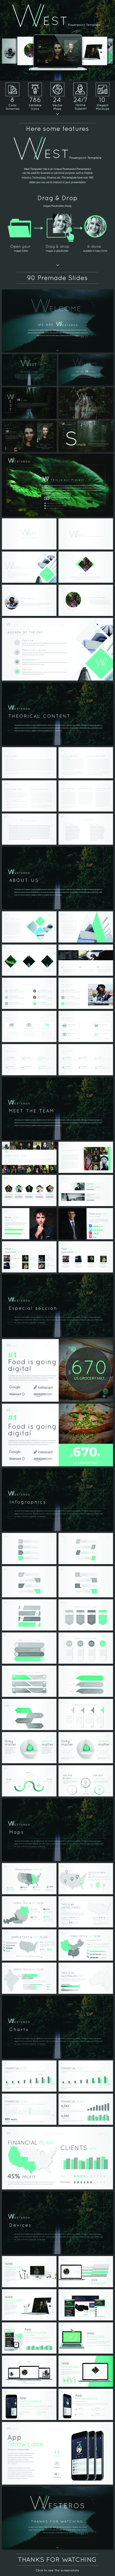 GraphicRiver West Powerpoint Template 20950411